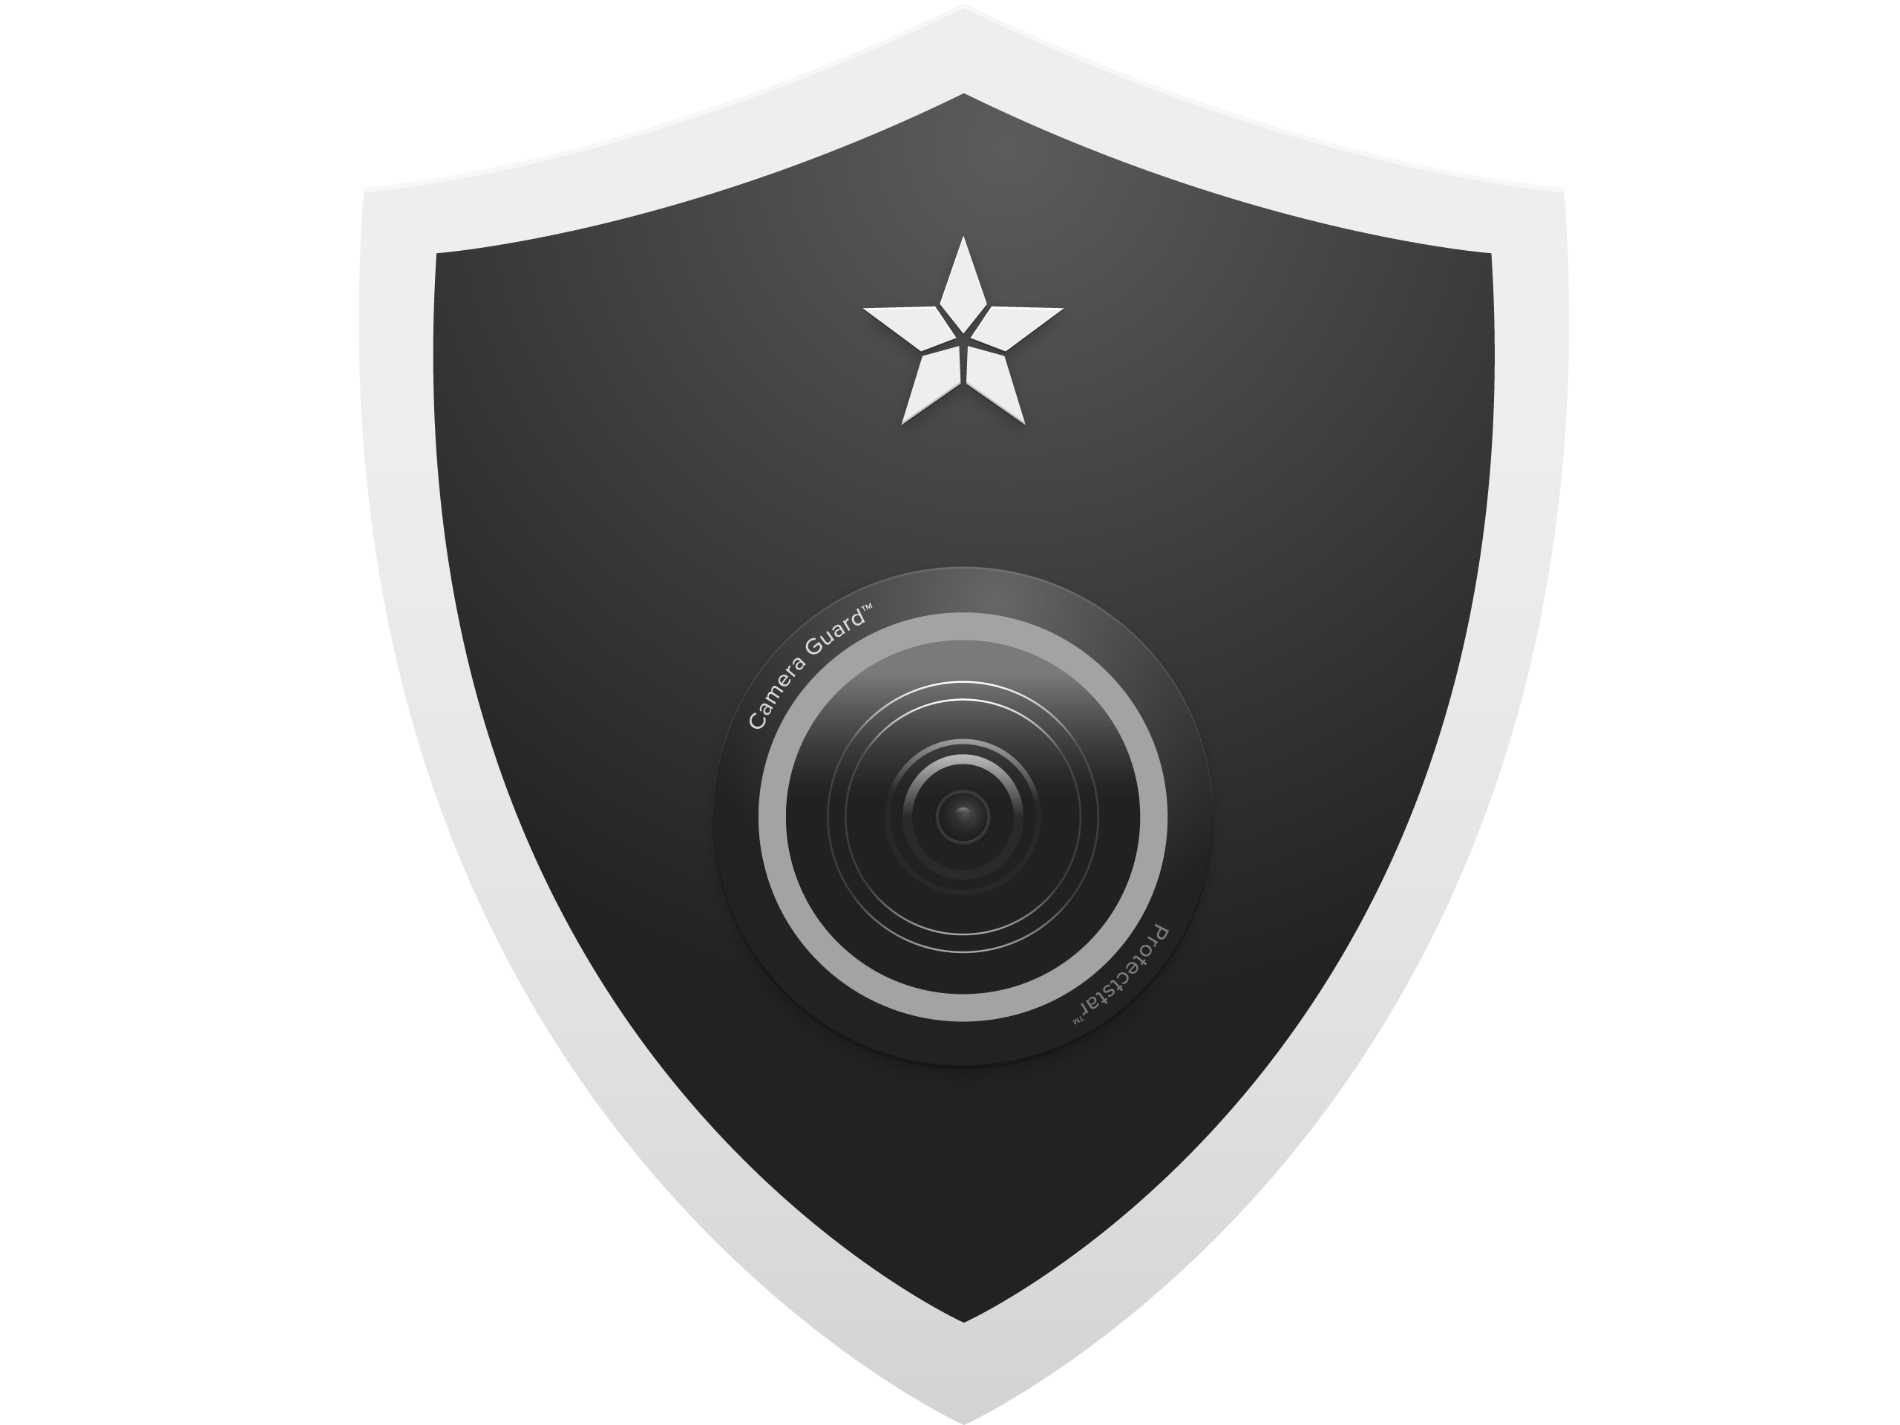 Camera-guard-appicon